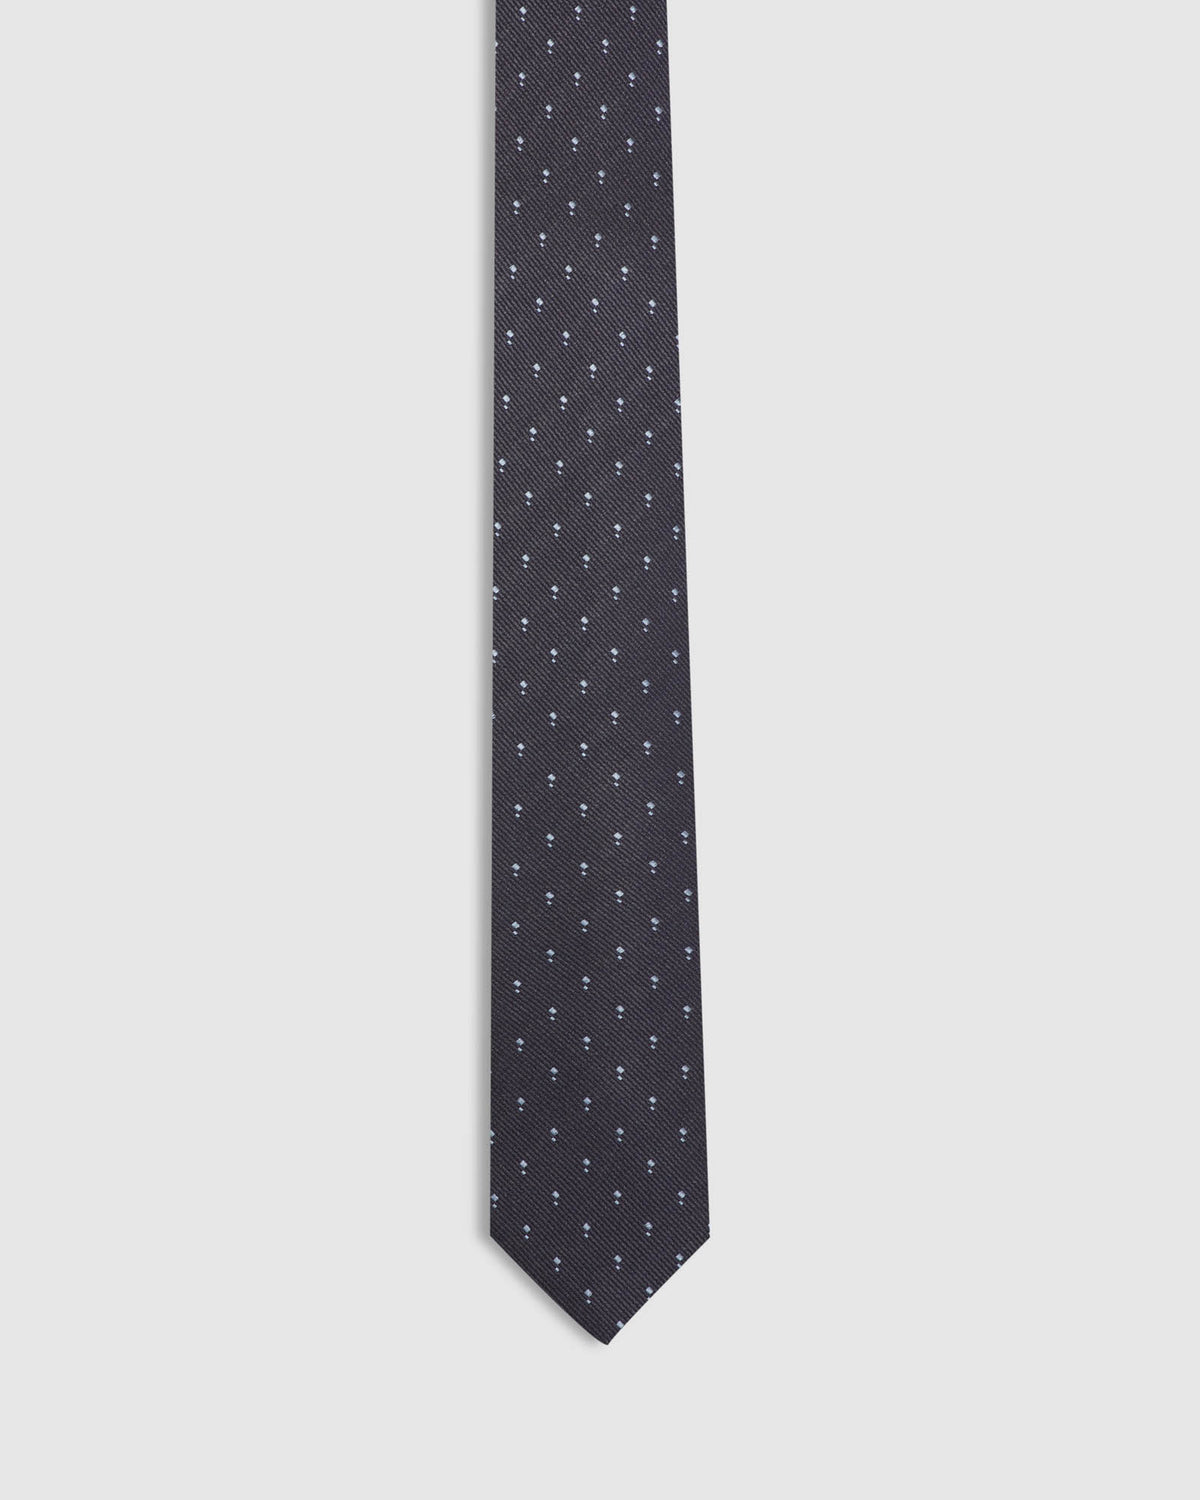 SQUARED SILK SKINNY TIE CHARCOAL/BLUE